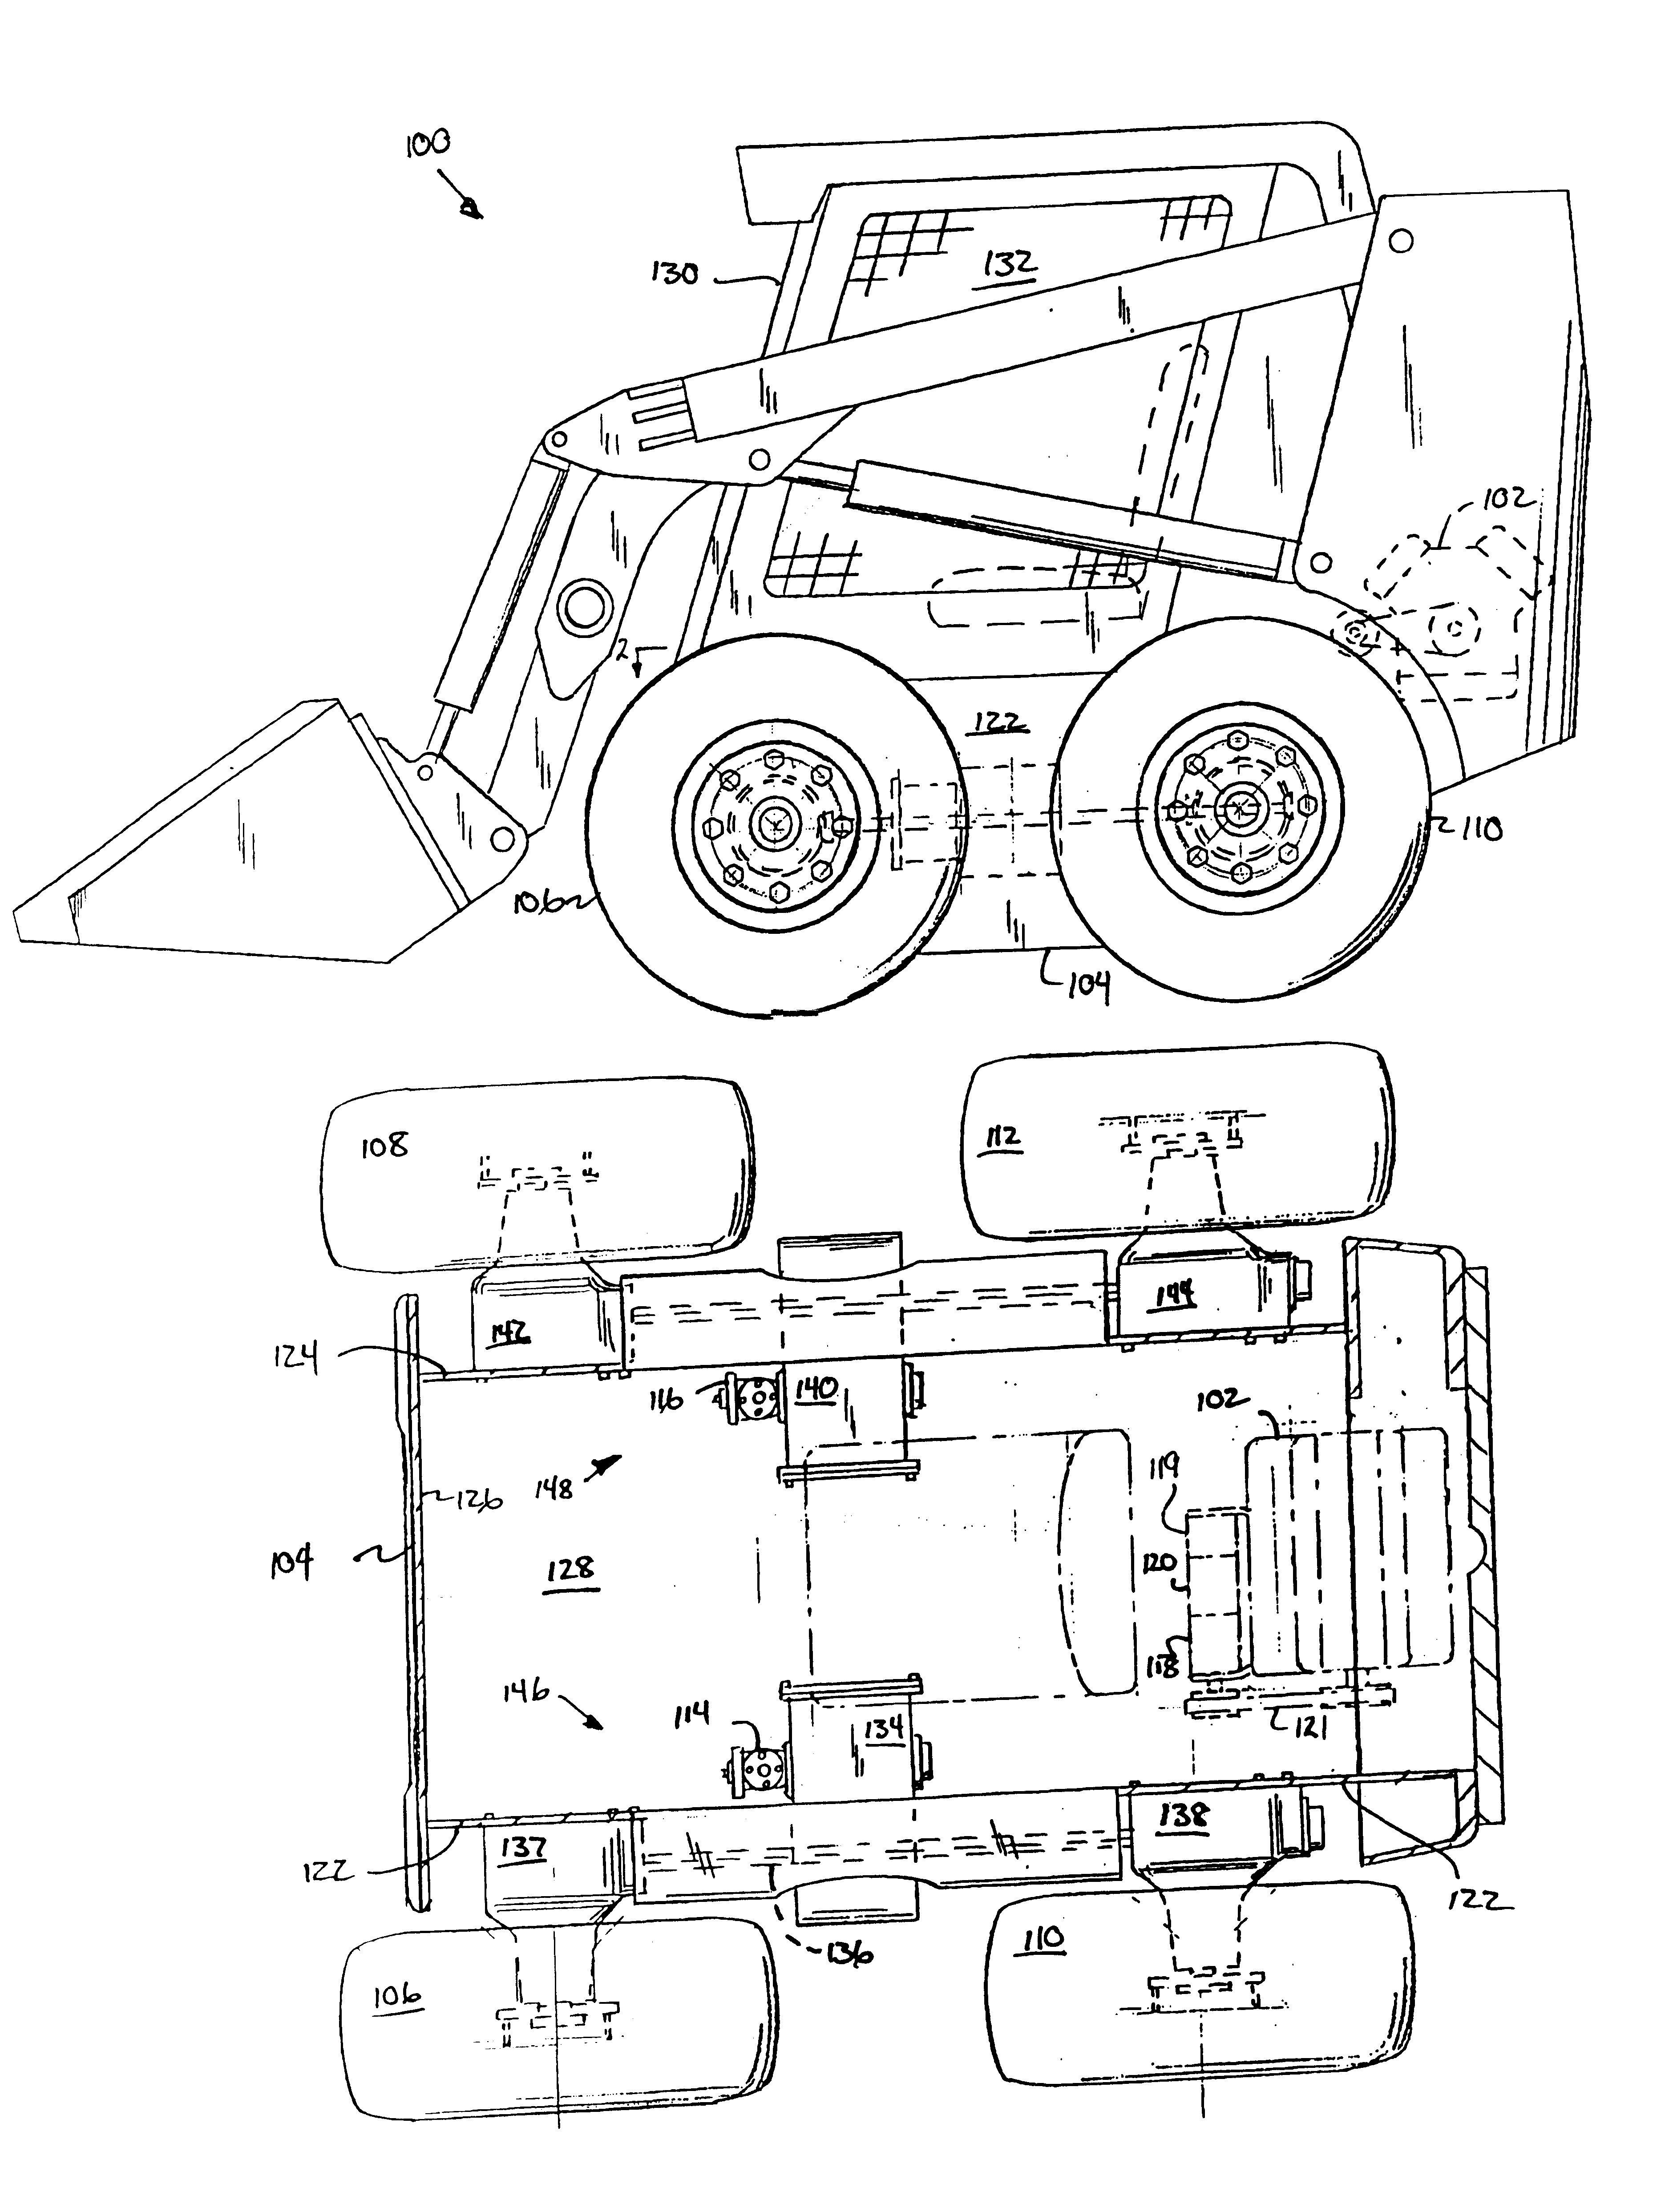 Caterpillar Skid Steer Wiring Diagram on free freightliner wiring diagrams